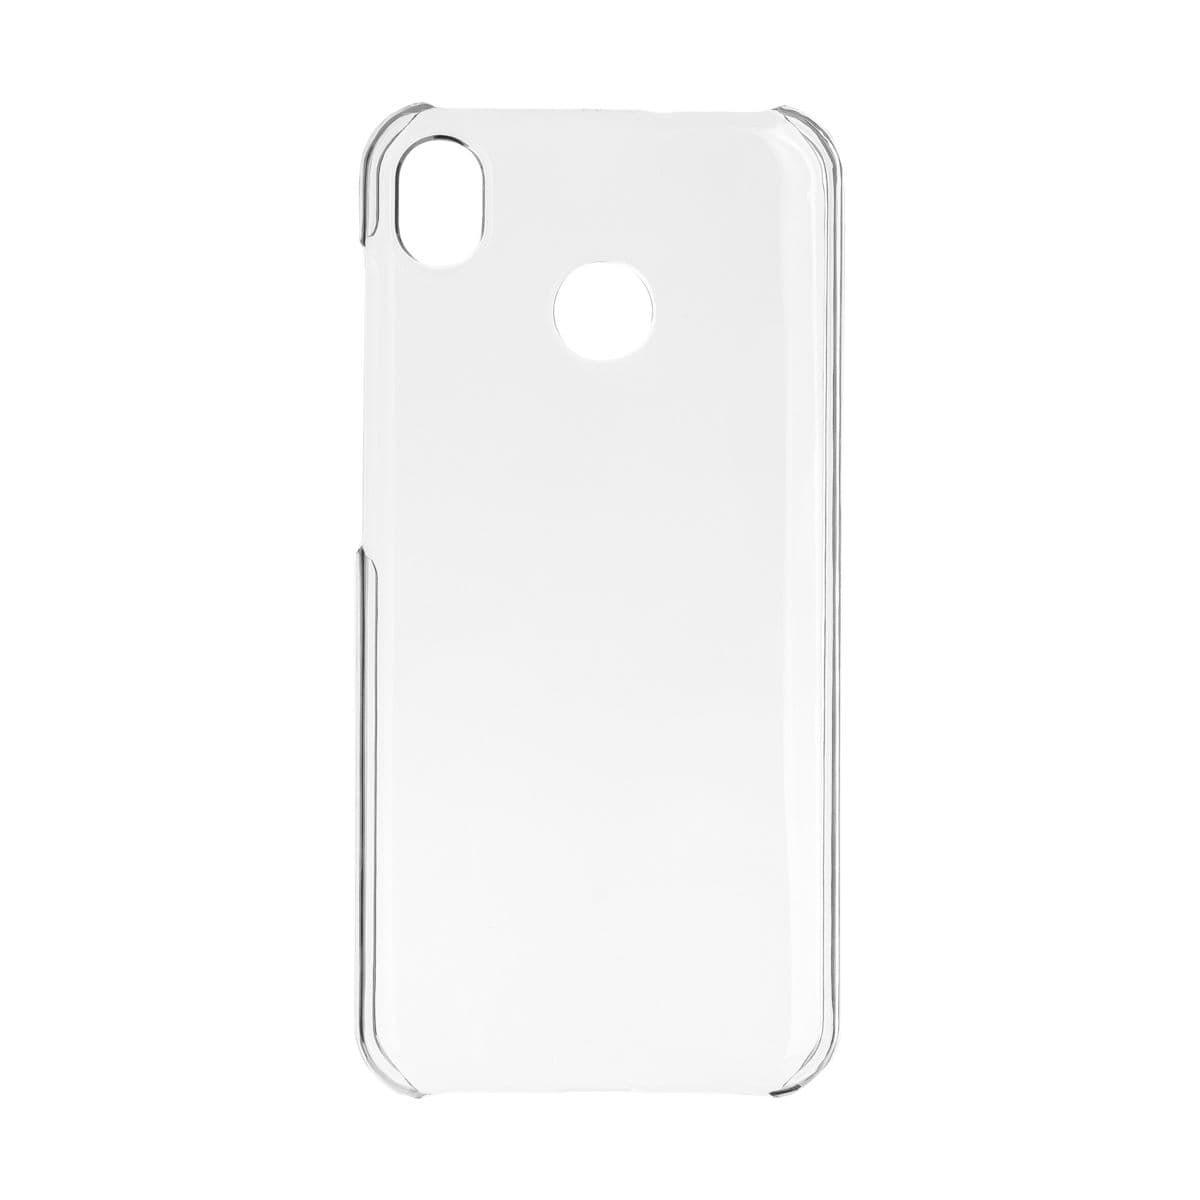 Gigaset TOTAL CLEAR Cover GS185